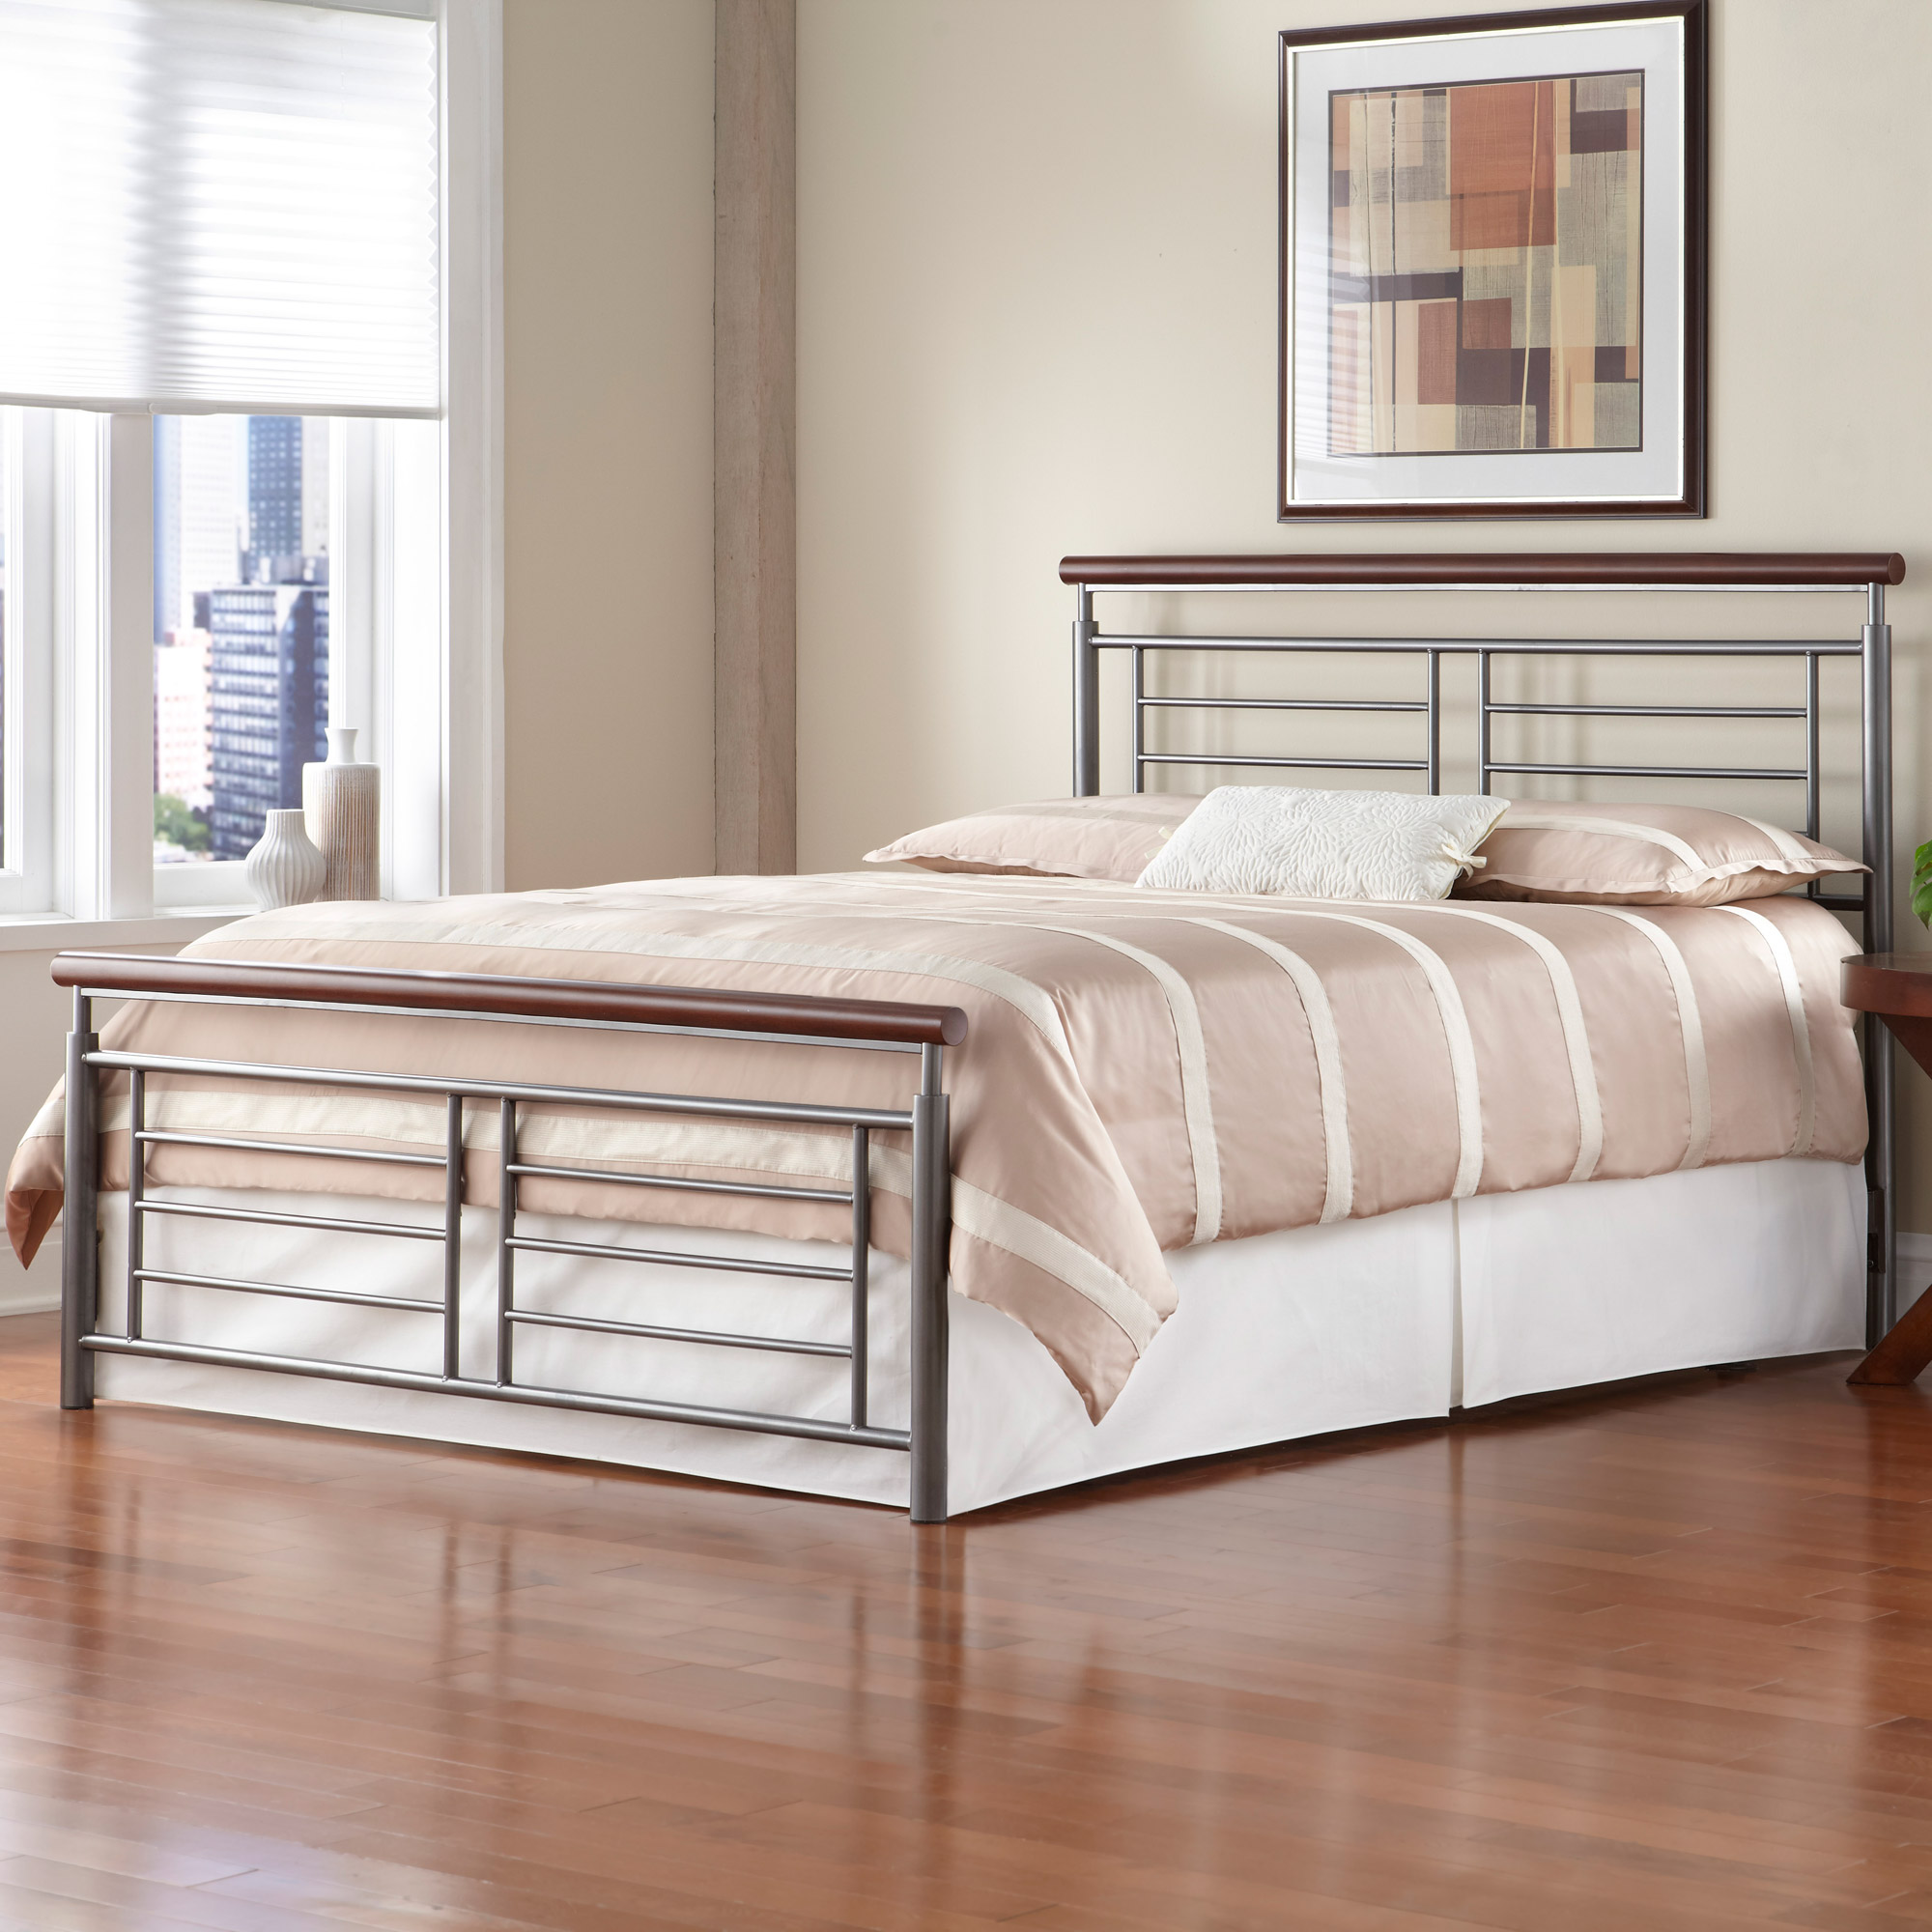 Fontane Iron Bed Silver Cherry Metal Contemporary Design